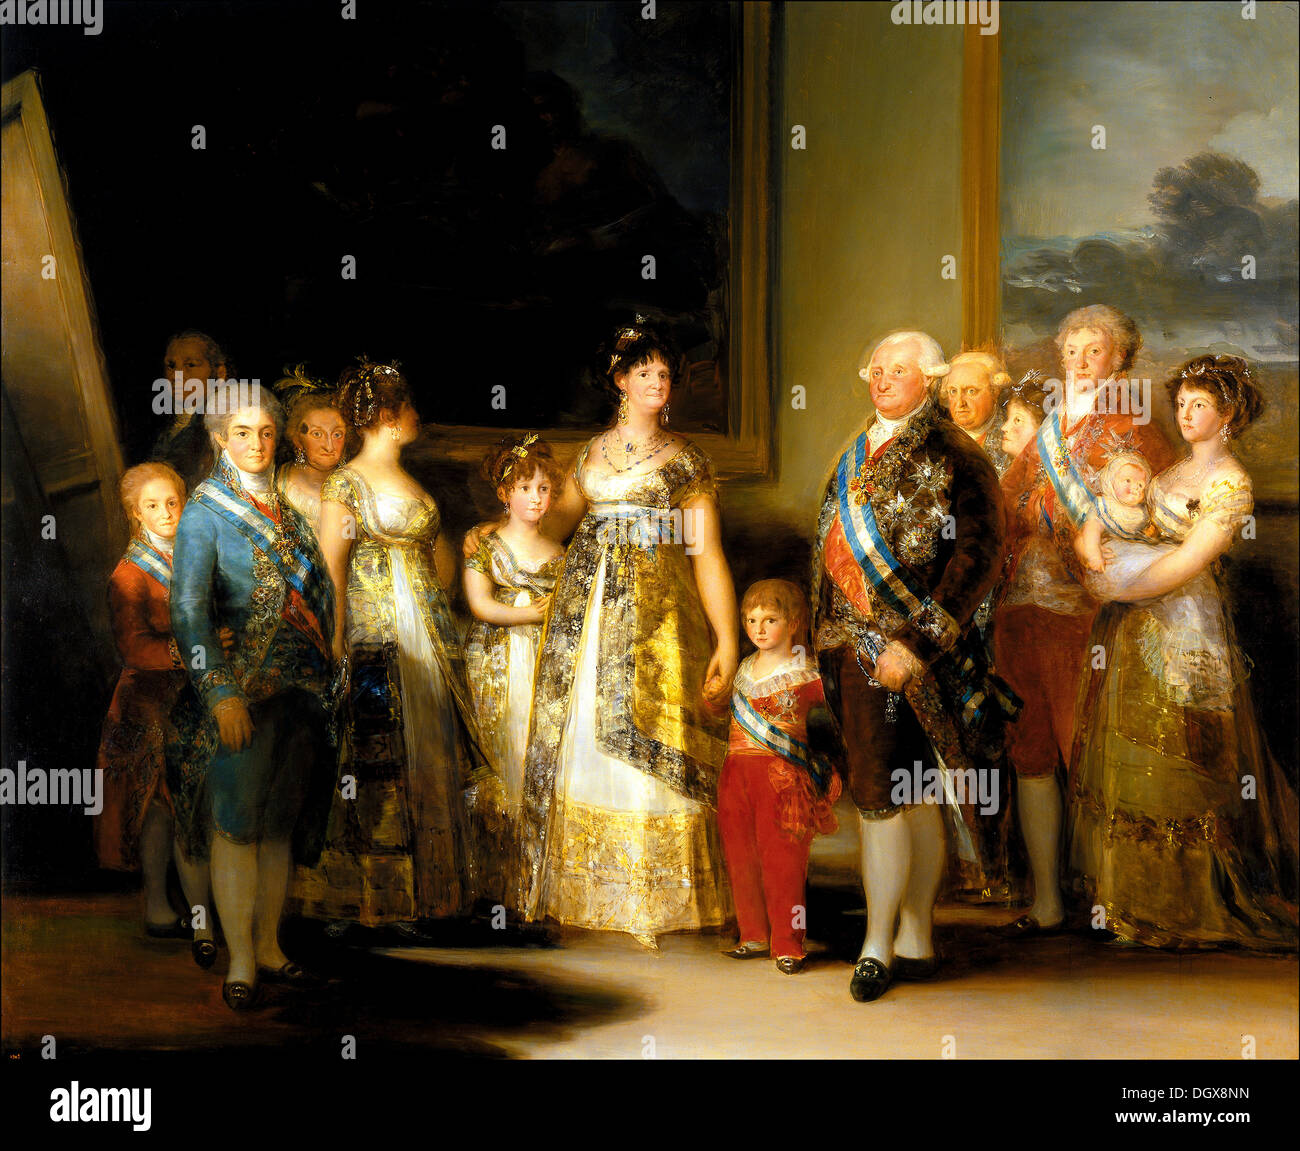 Charles IV of Spain and His Family - by Francisco Goya, 1800 - Stock Image